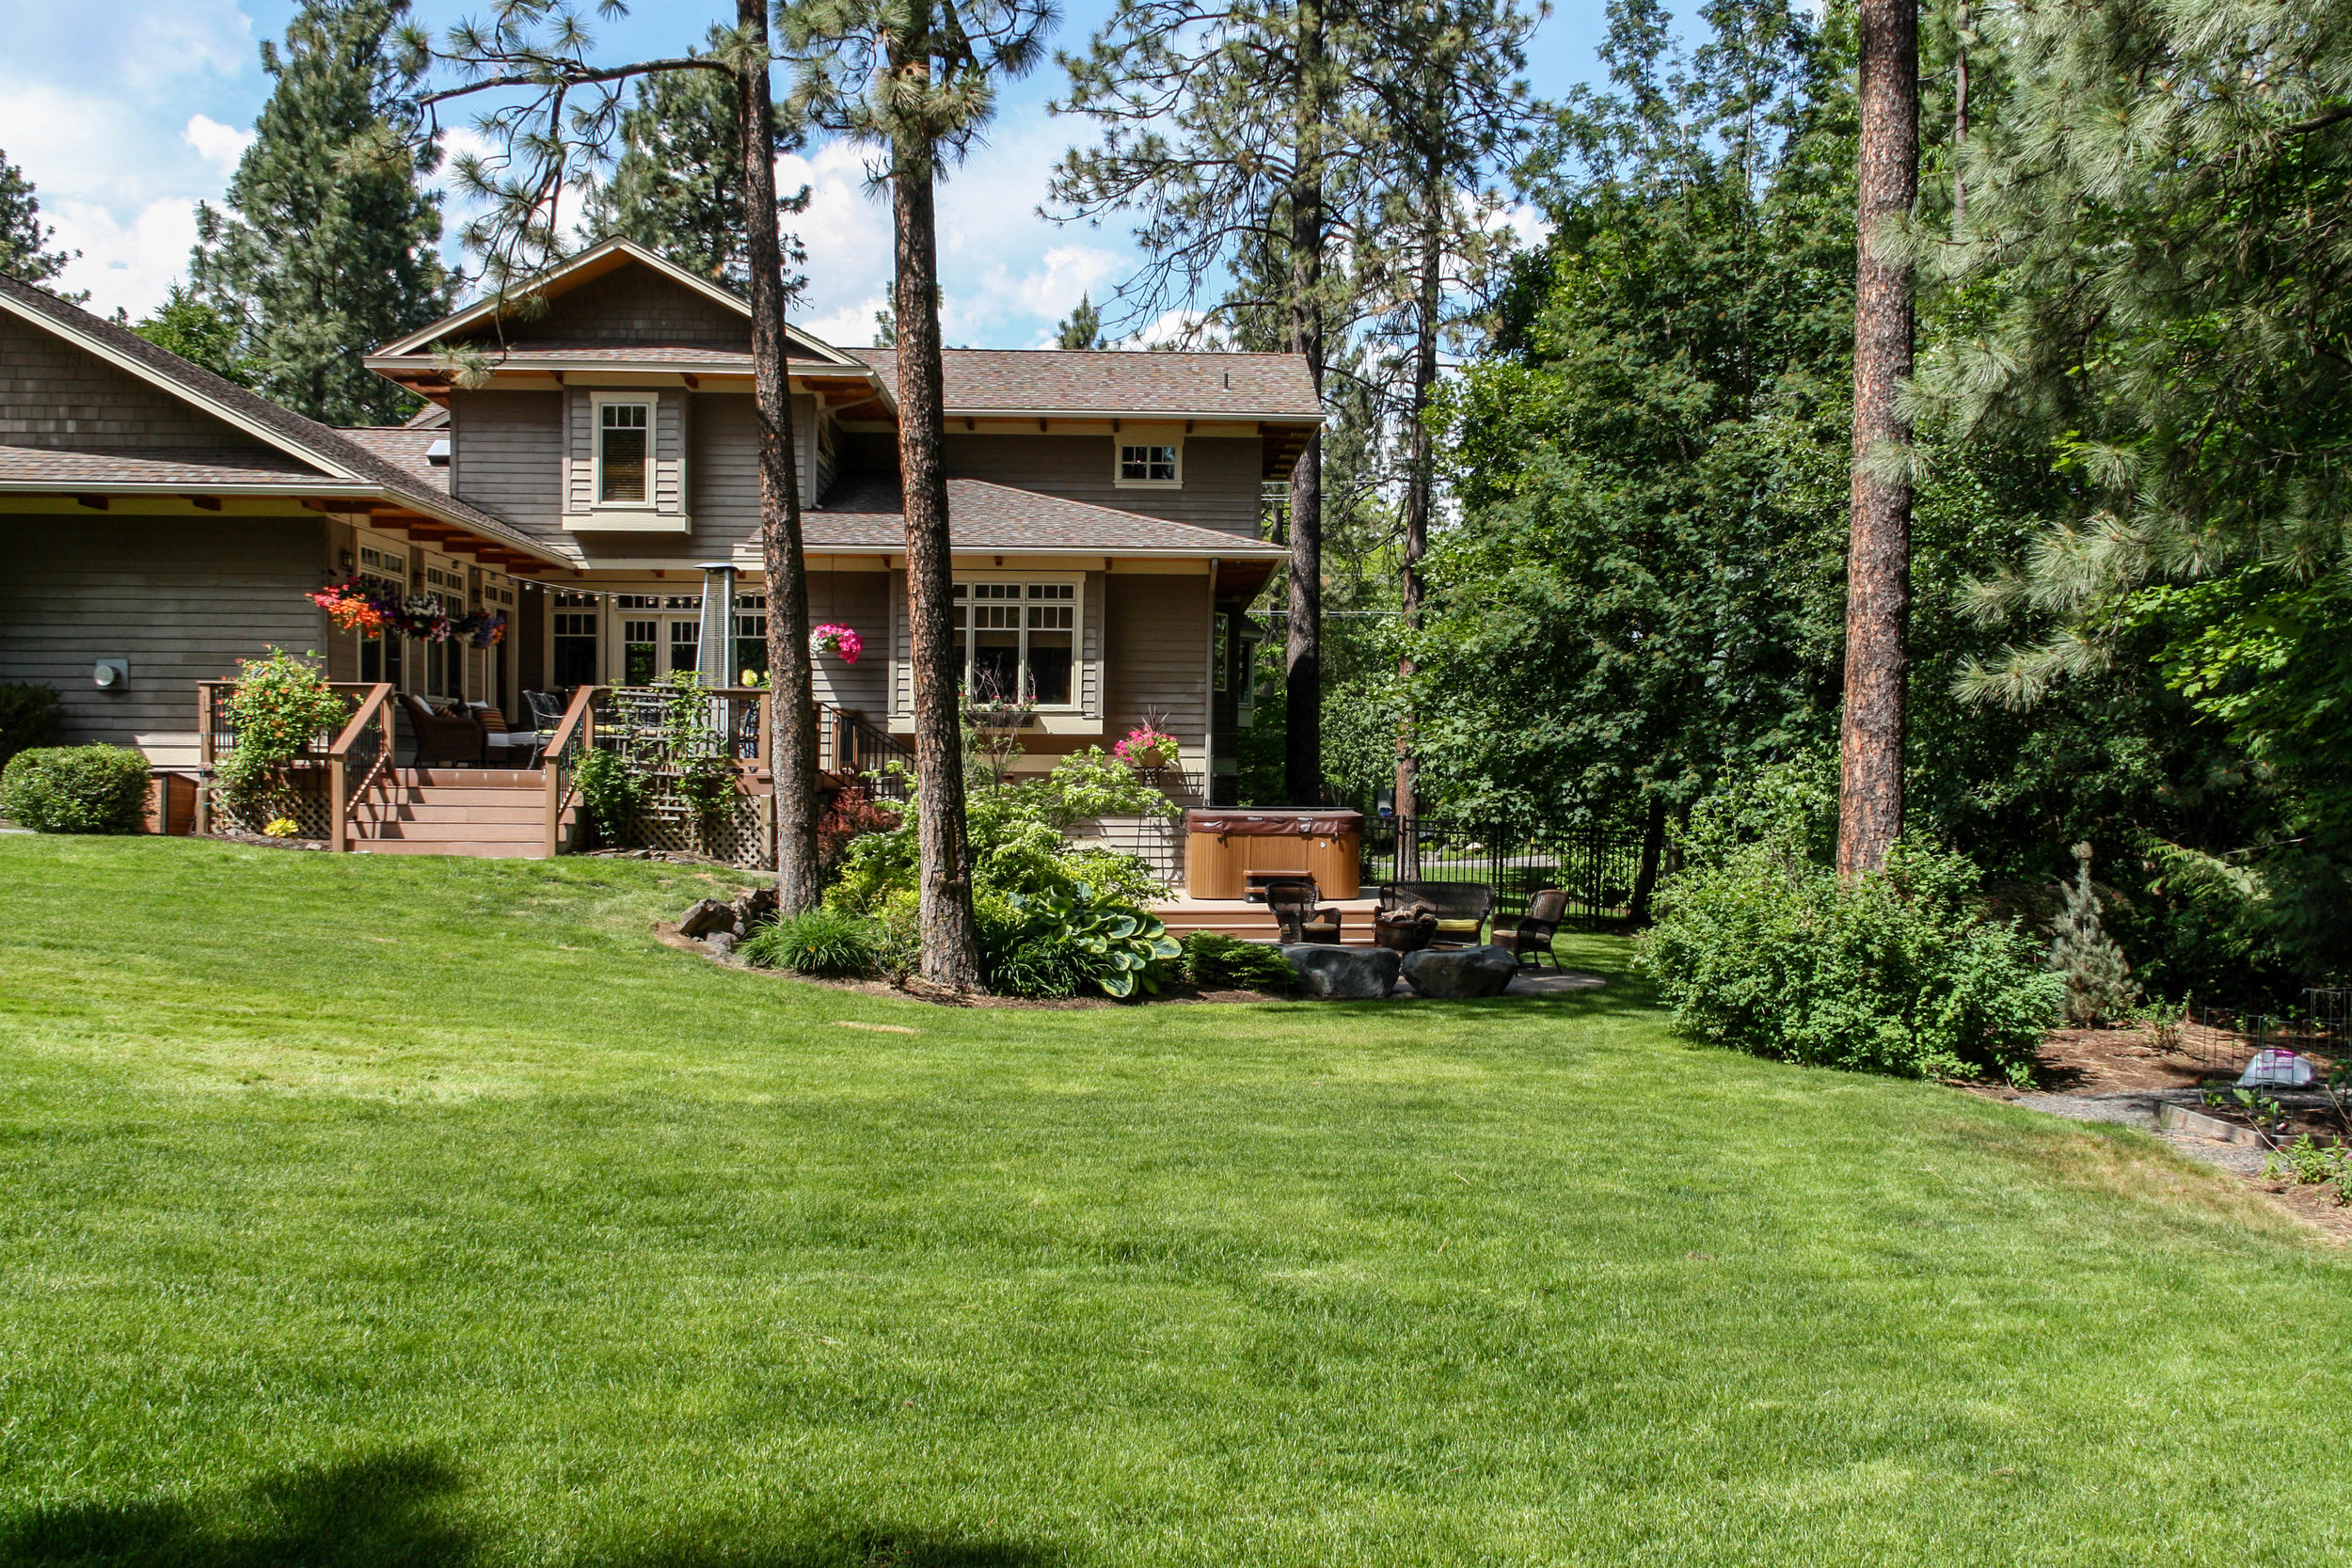 rockwood craftsman landscaping with multi-level deck and patio